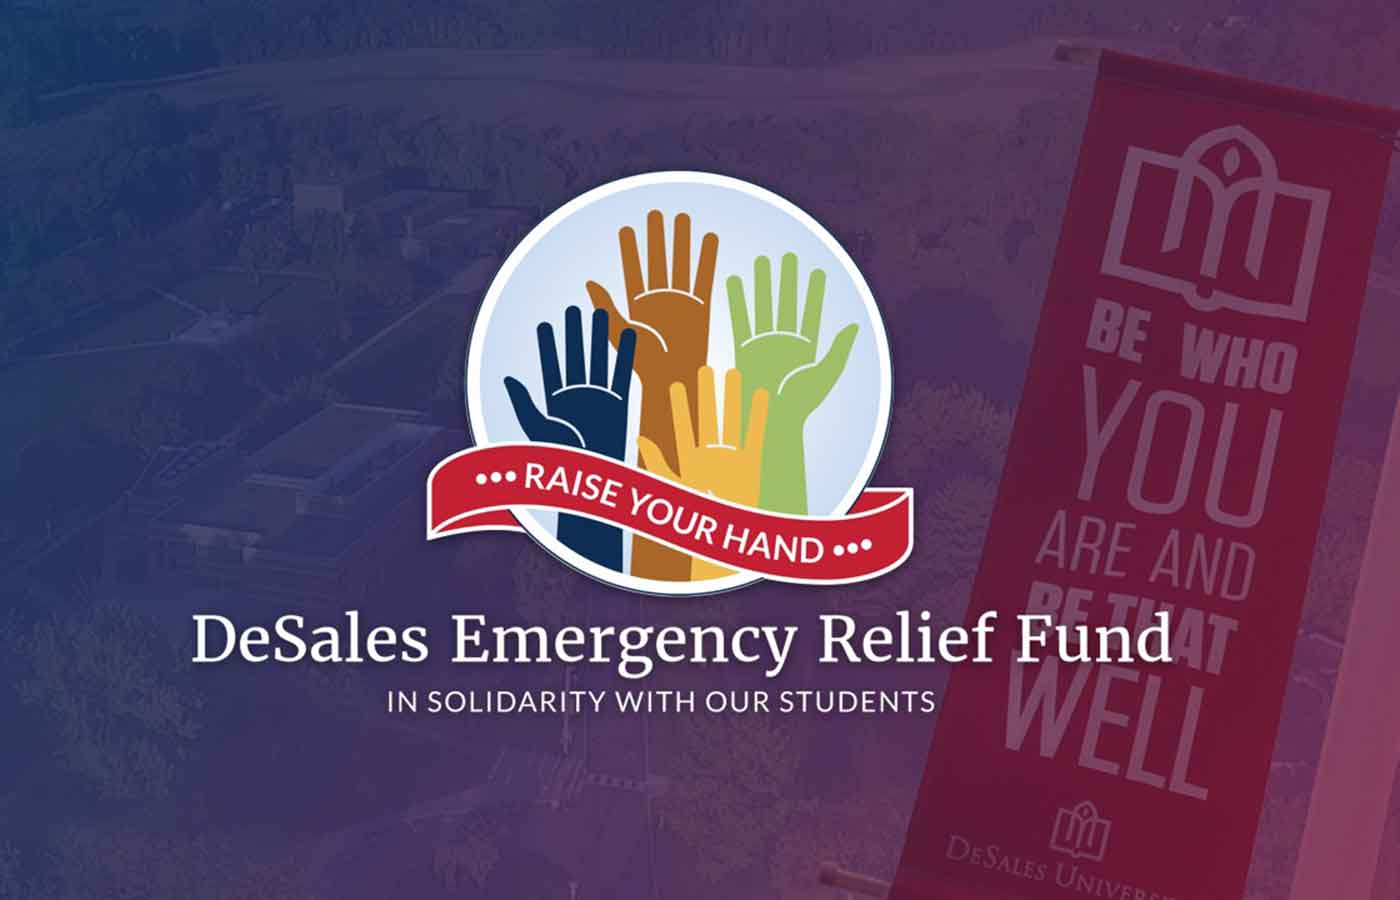 DeSales Emergency Relief Fund